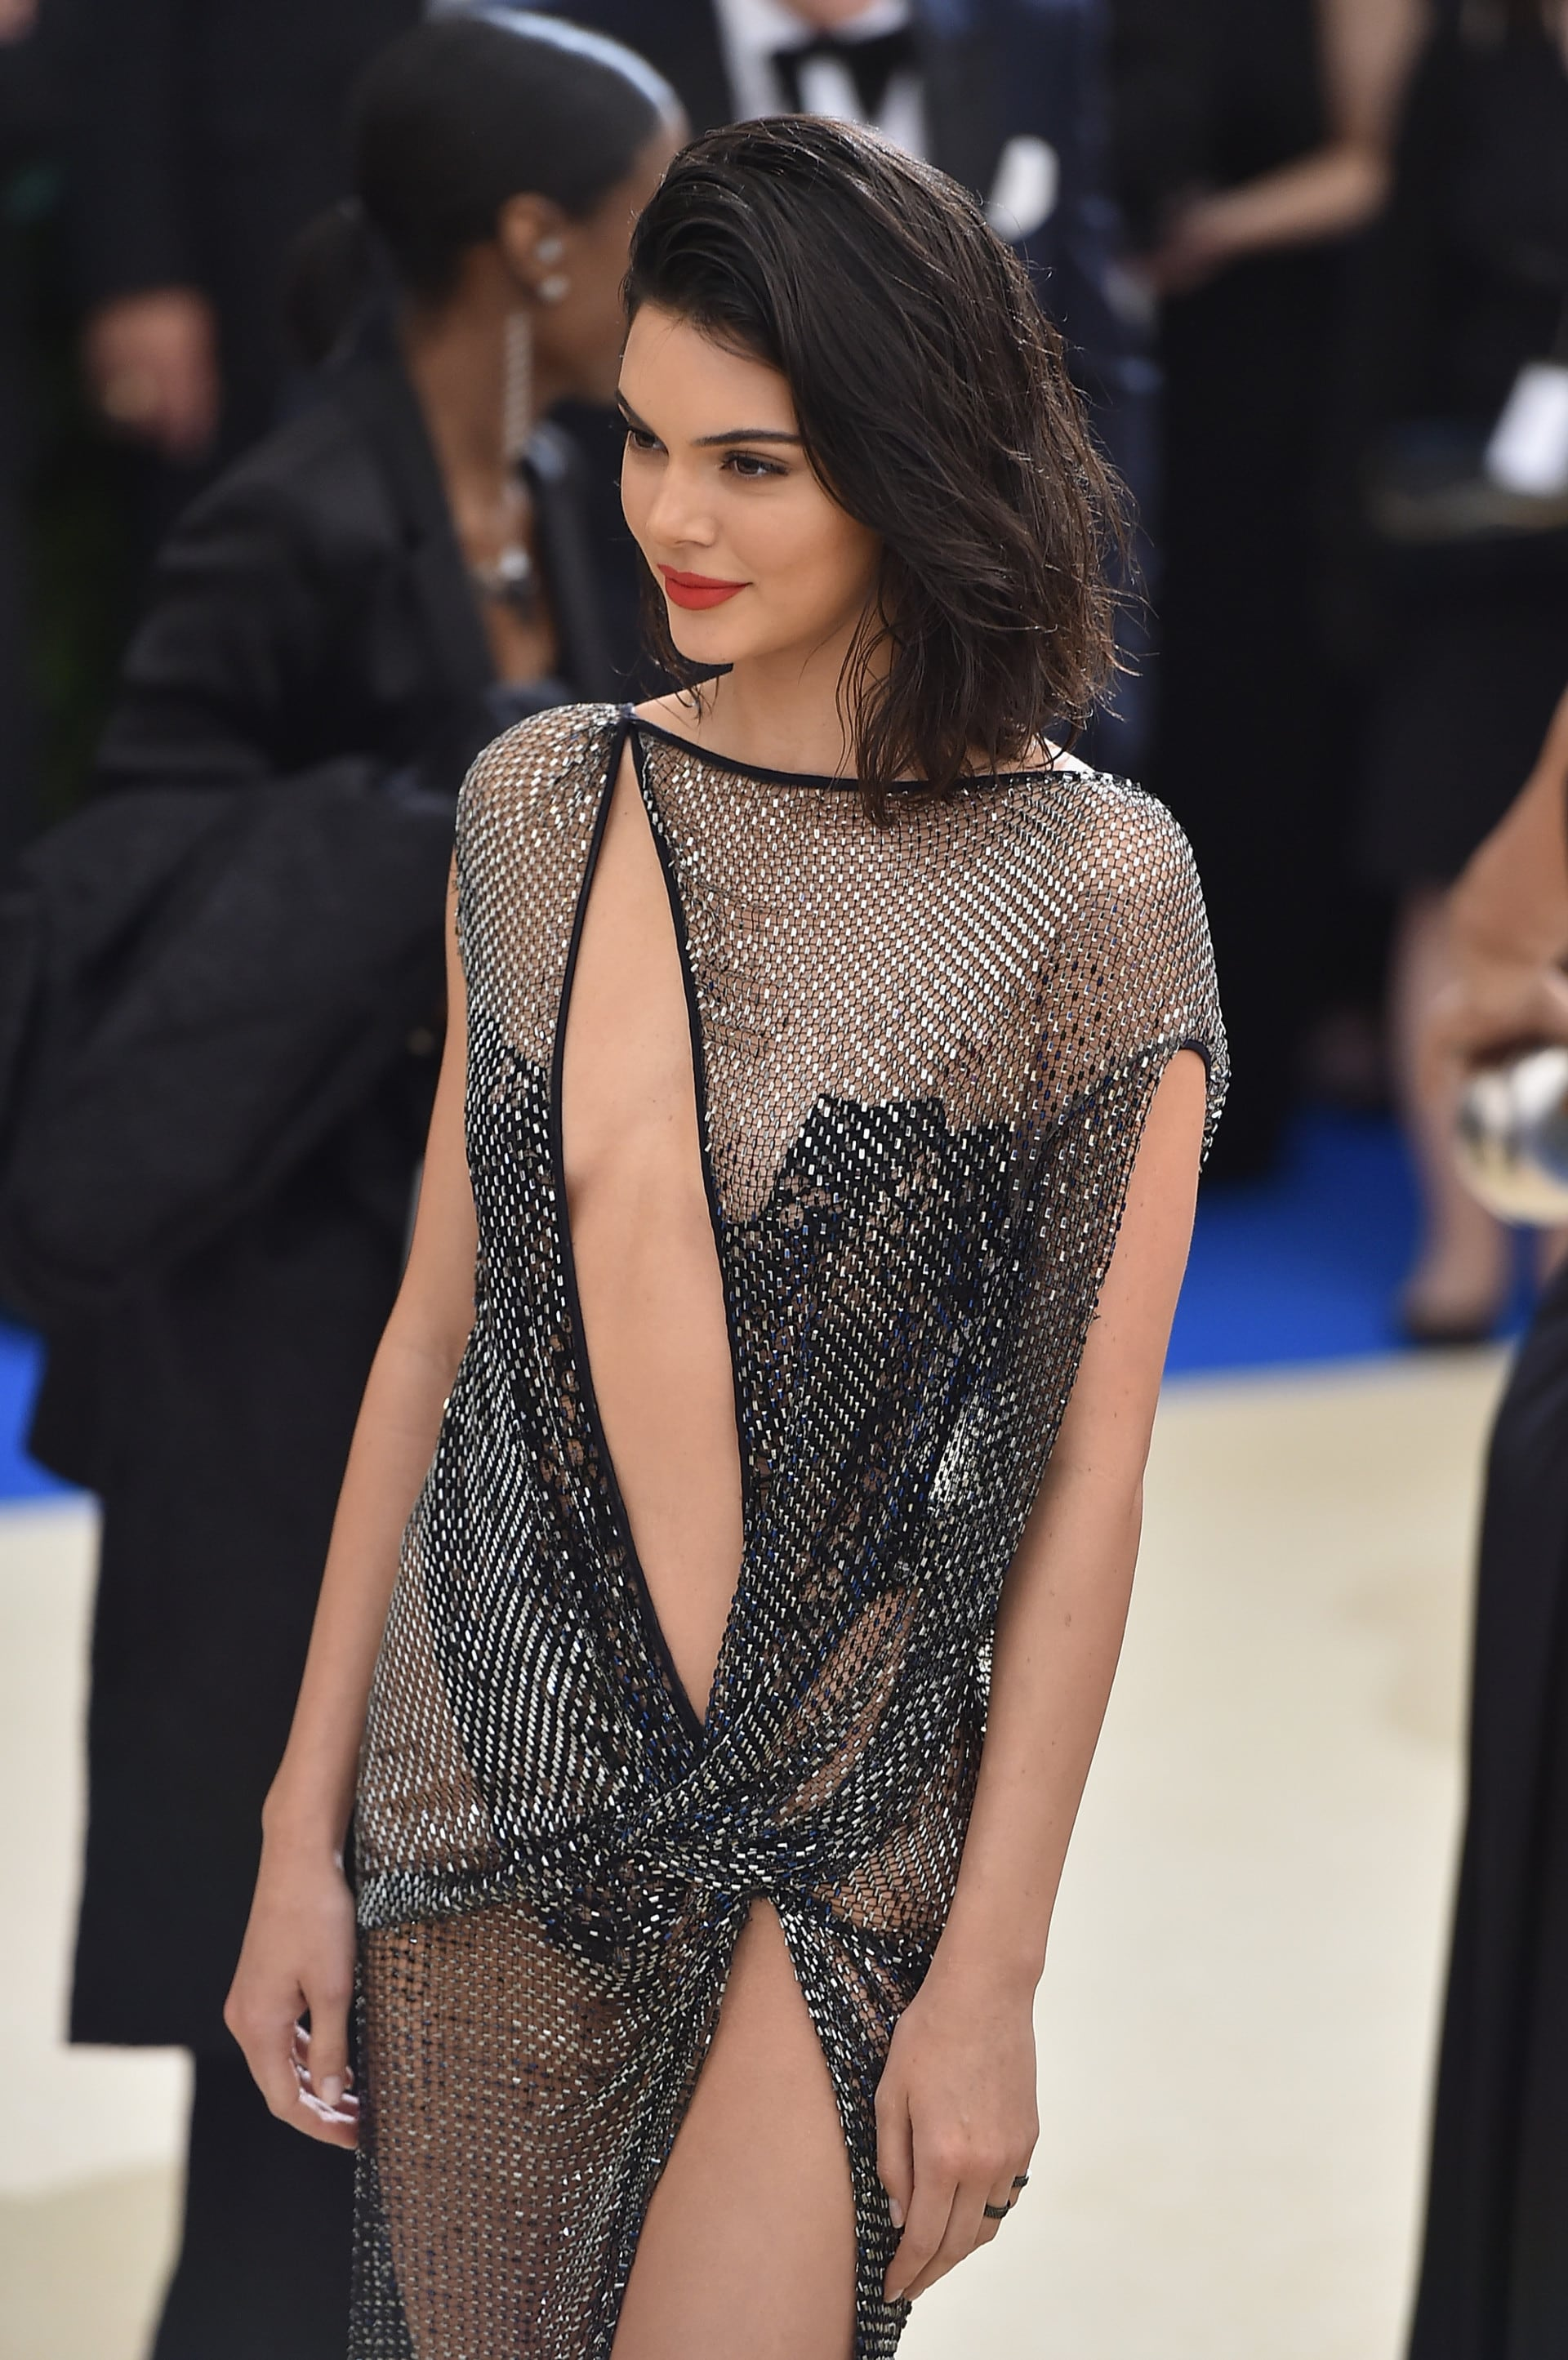 Kendall Jenner is being slut-shamed for her Met Gala dress